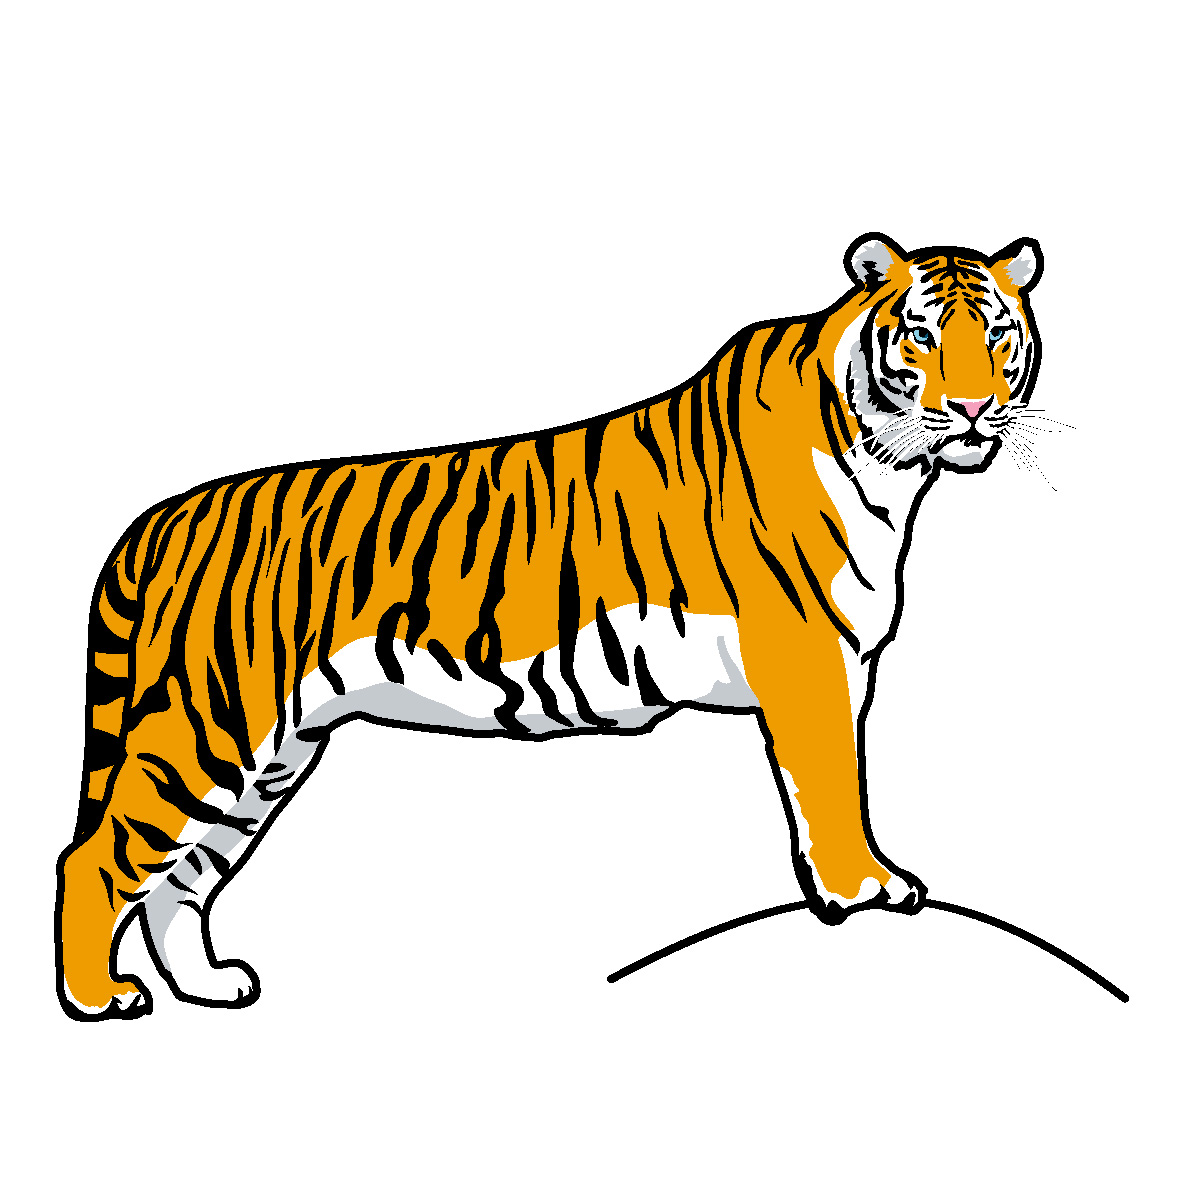 Tiger Clipart running%20tiger%20clipart%20black%20and%20white